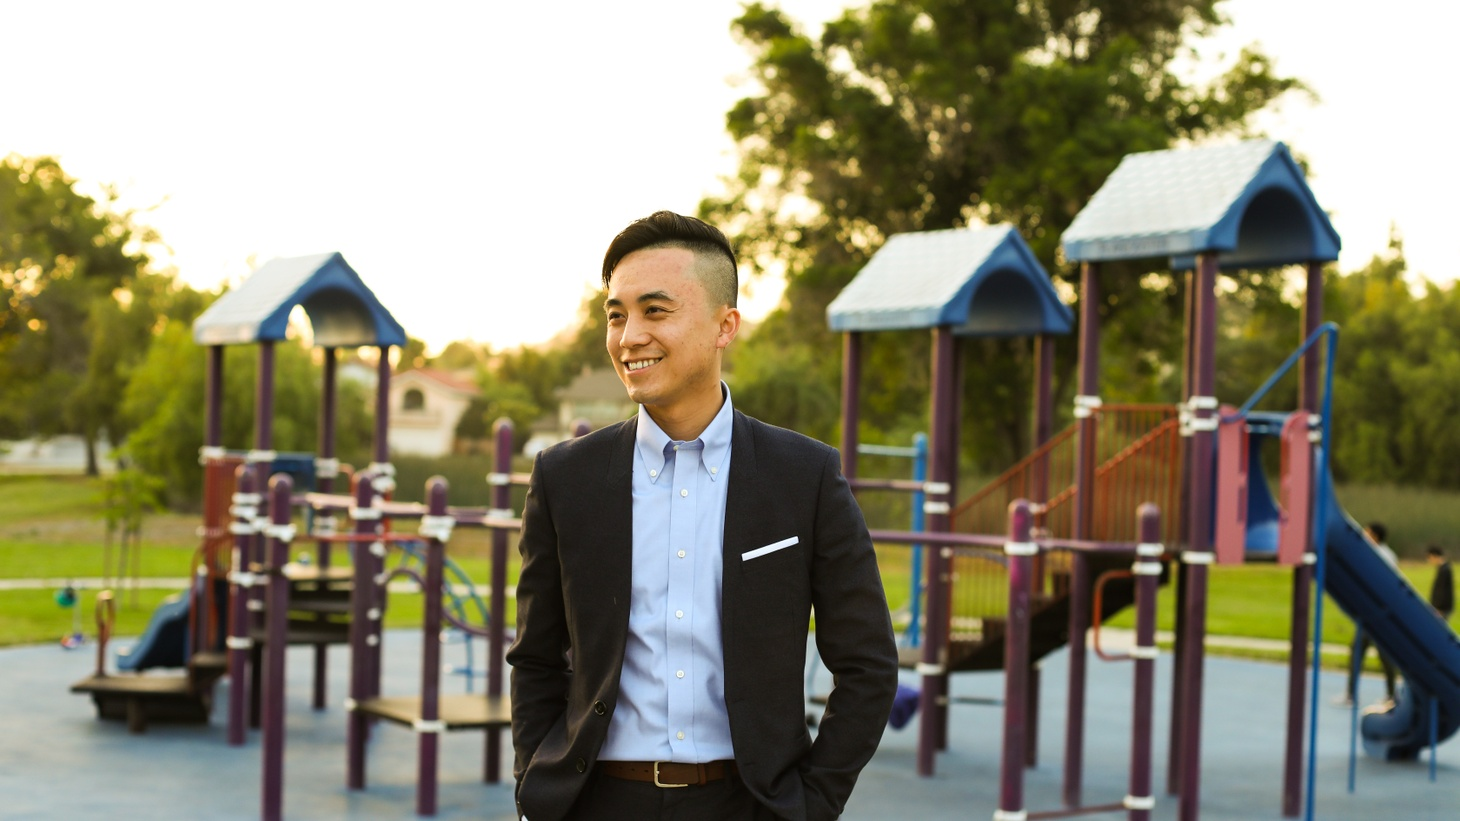 Alex Lee, 25, was elected to the California State Assembly with 72% of the vote.